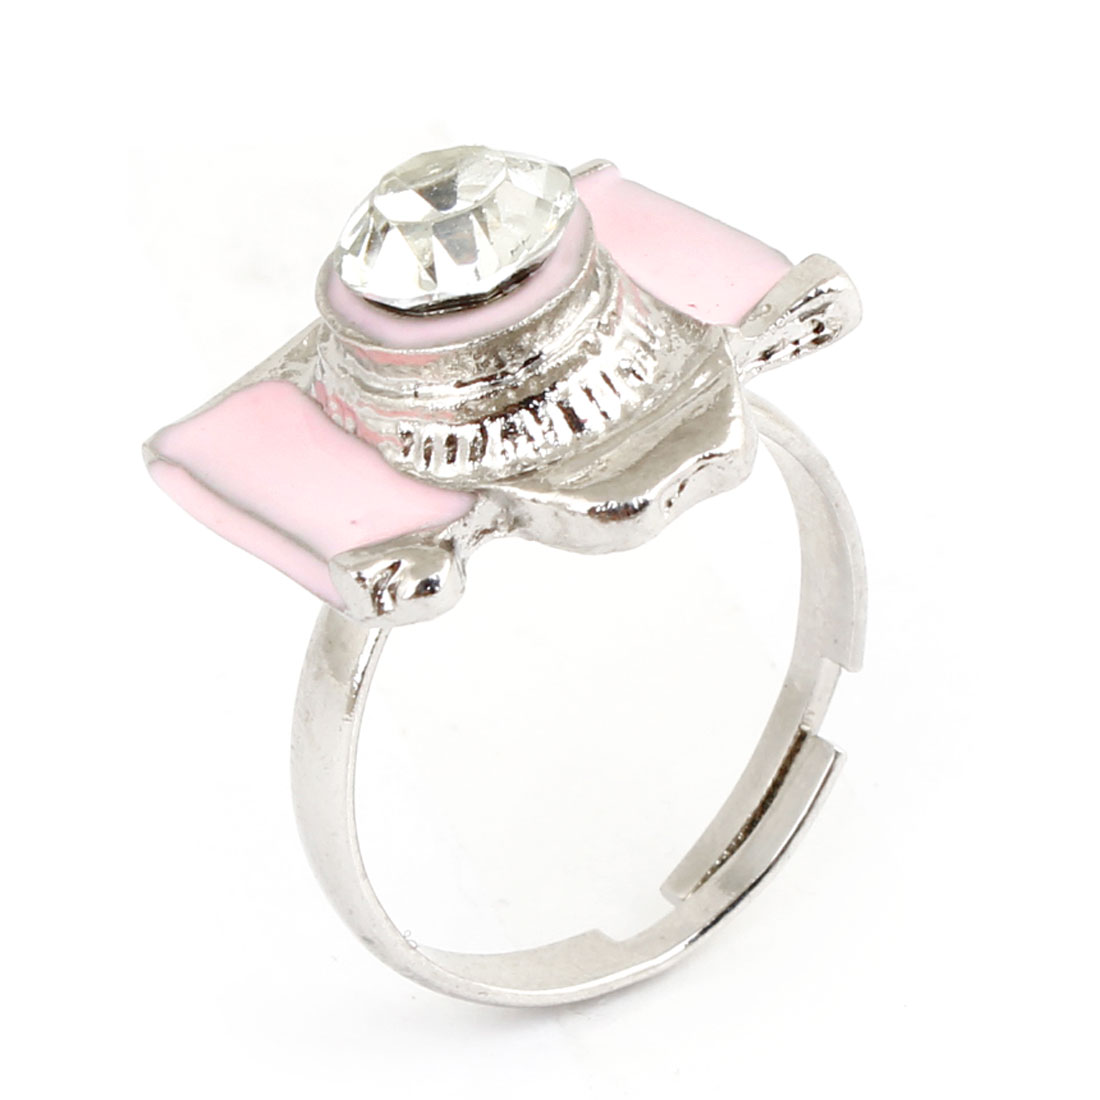 Ladies Decoration Pink Camera Shape Accent Finger Ring US 7 1/4